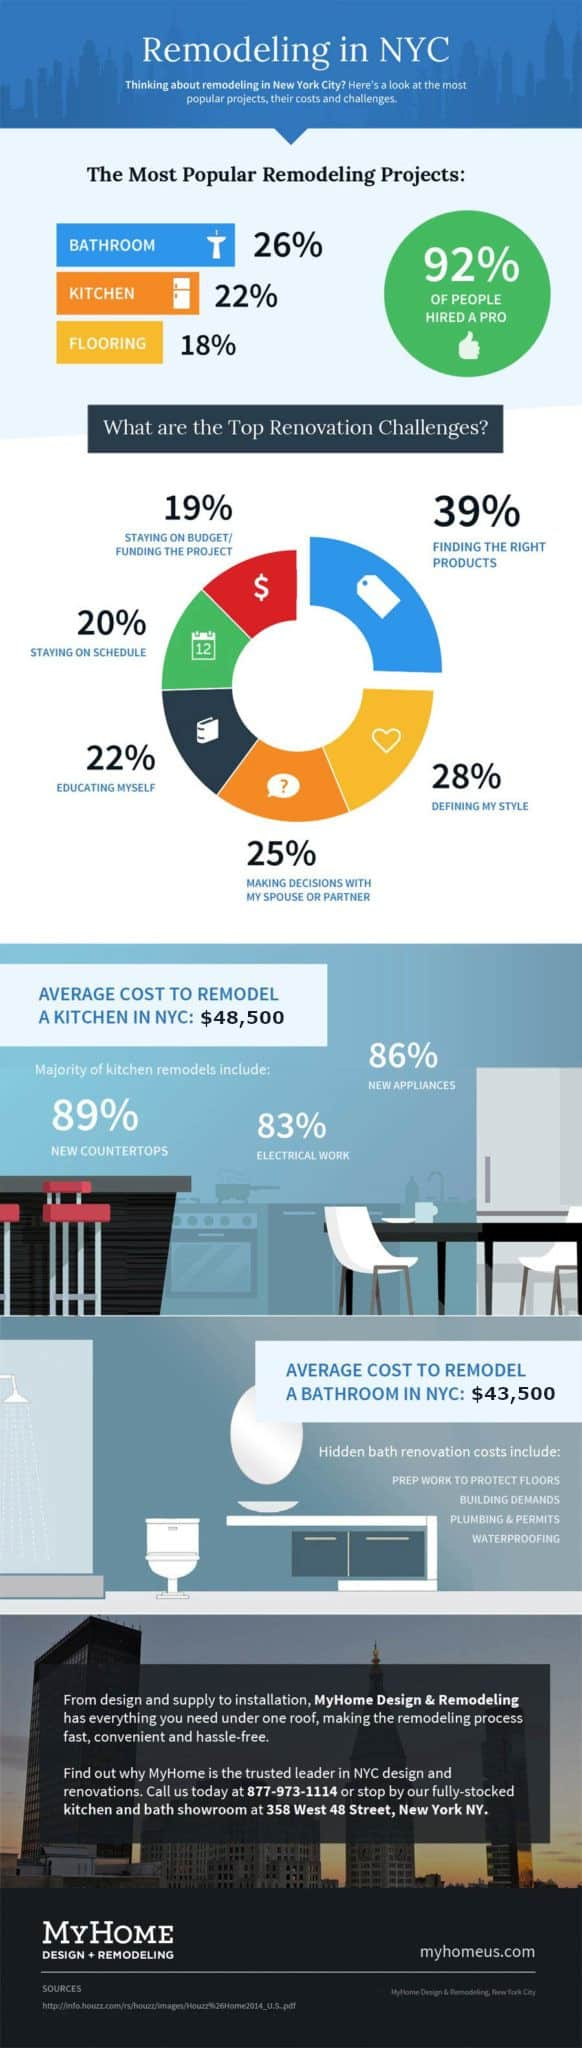 How Much Does it Cost to Remodel in NYC?